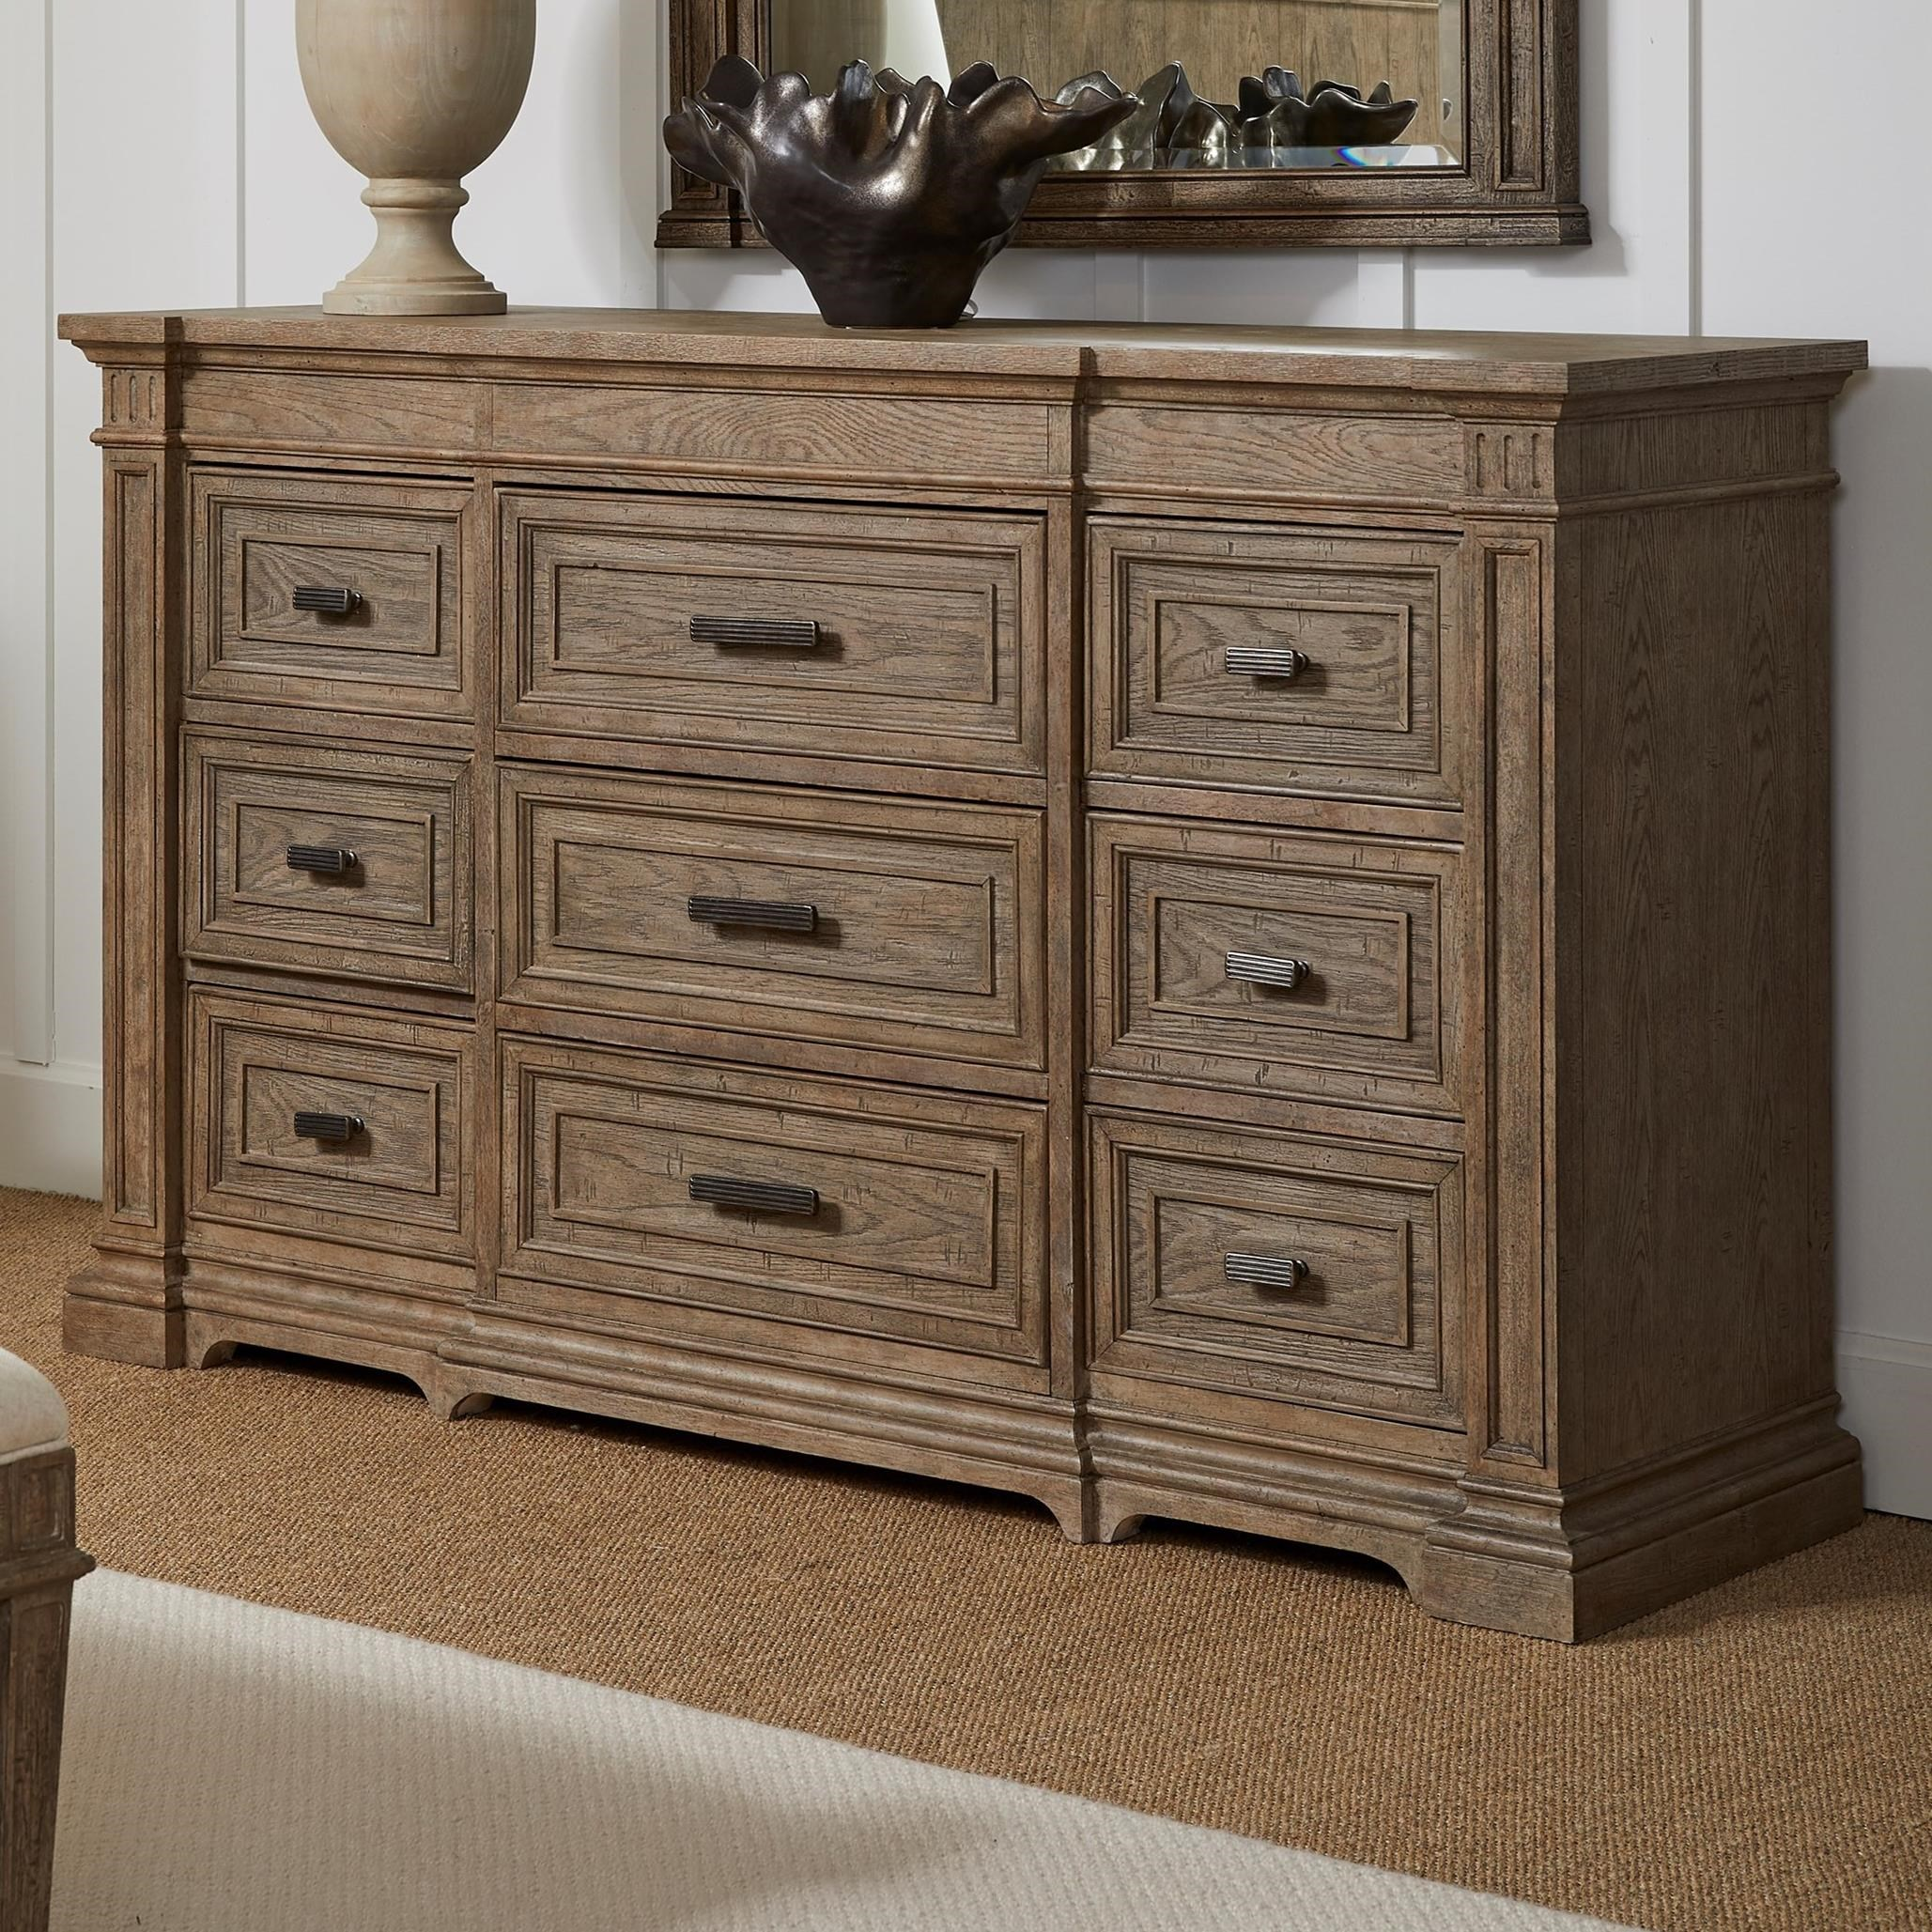 Portico Dresser by Stanley Furniture at Alison Craig Home Furnishings